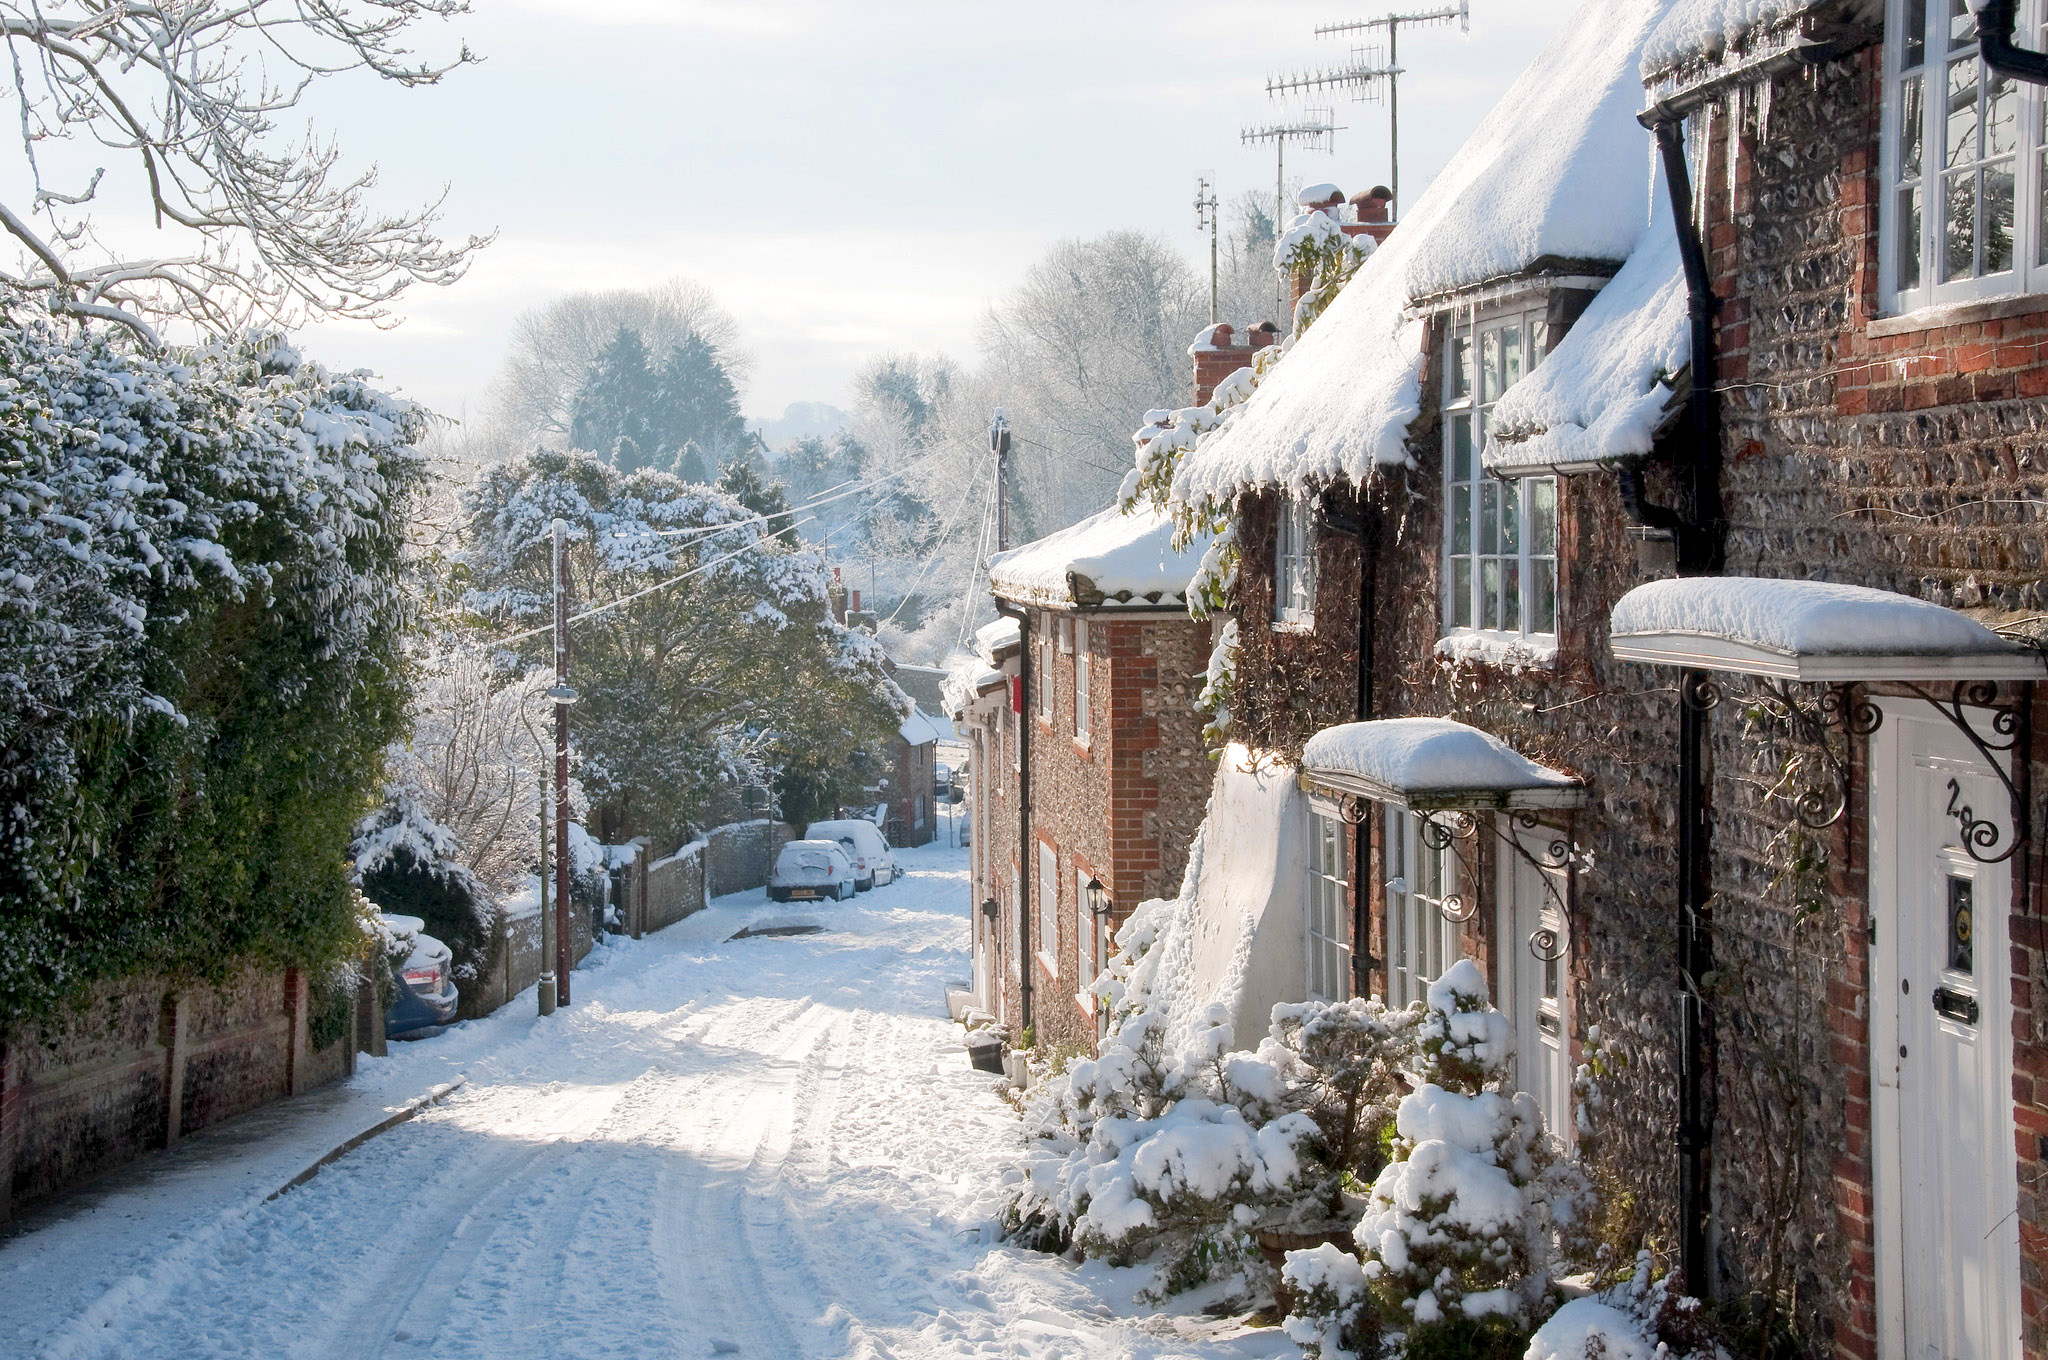 A snowy street in Patcham, East Sussex by Alan Bloom.jpg